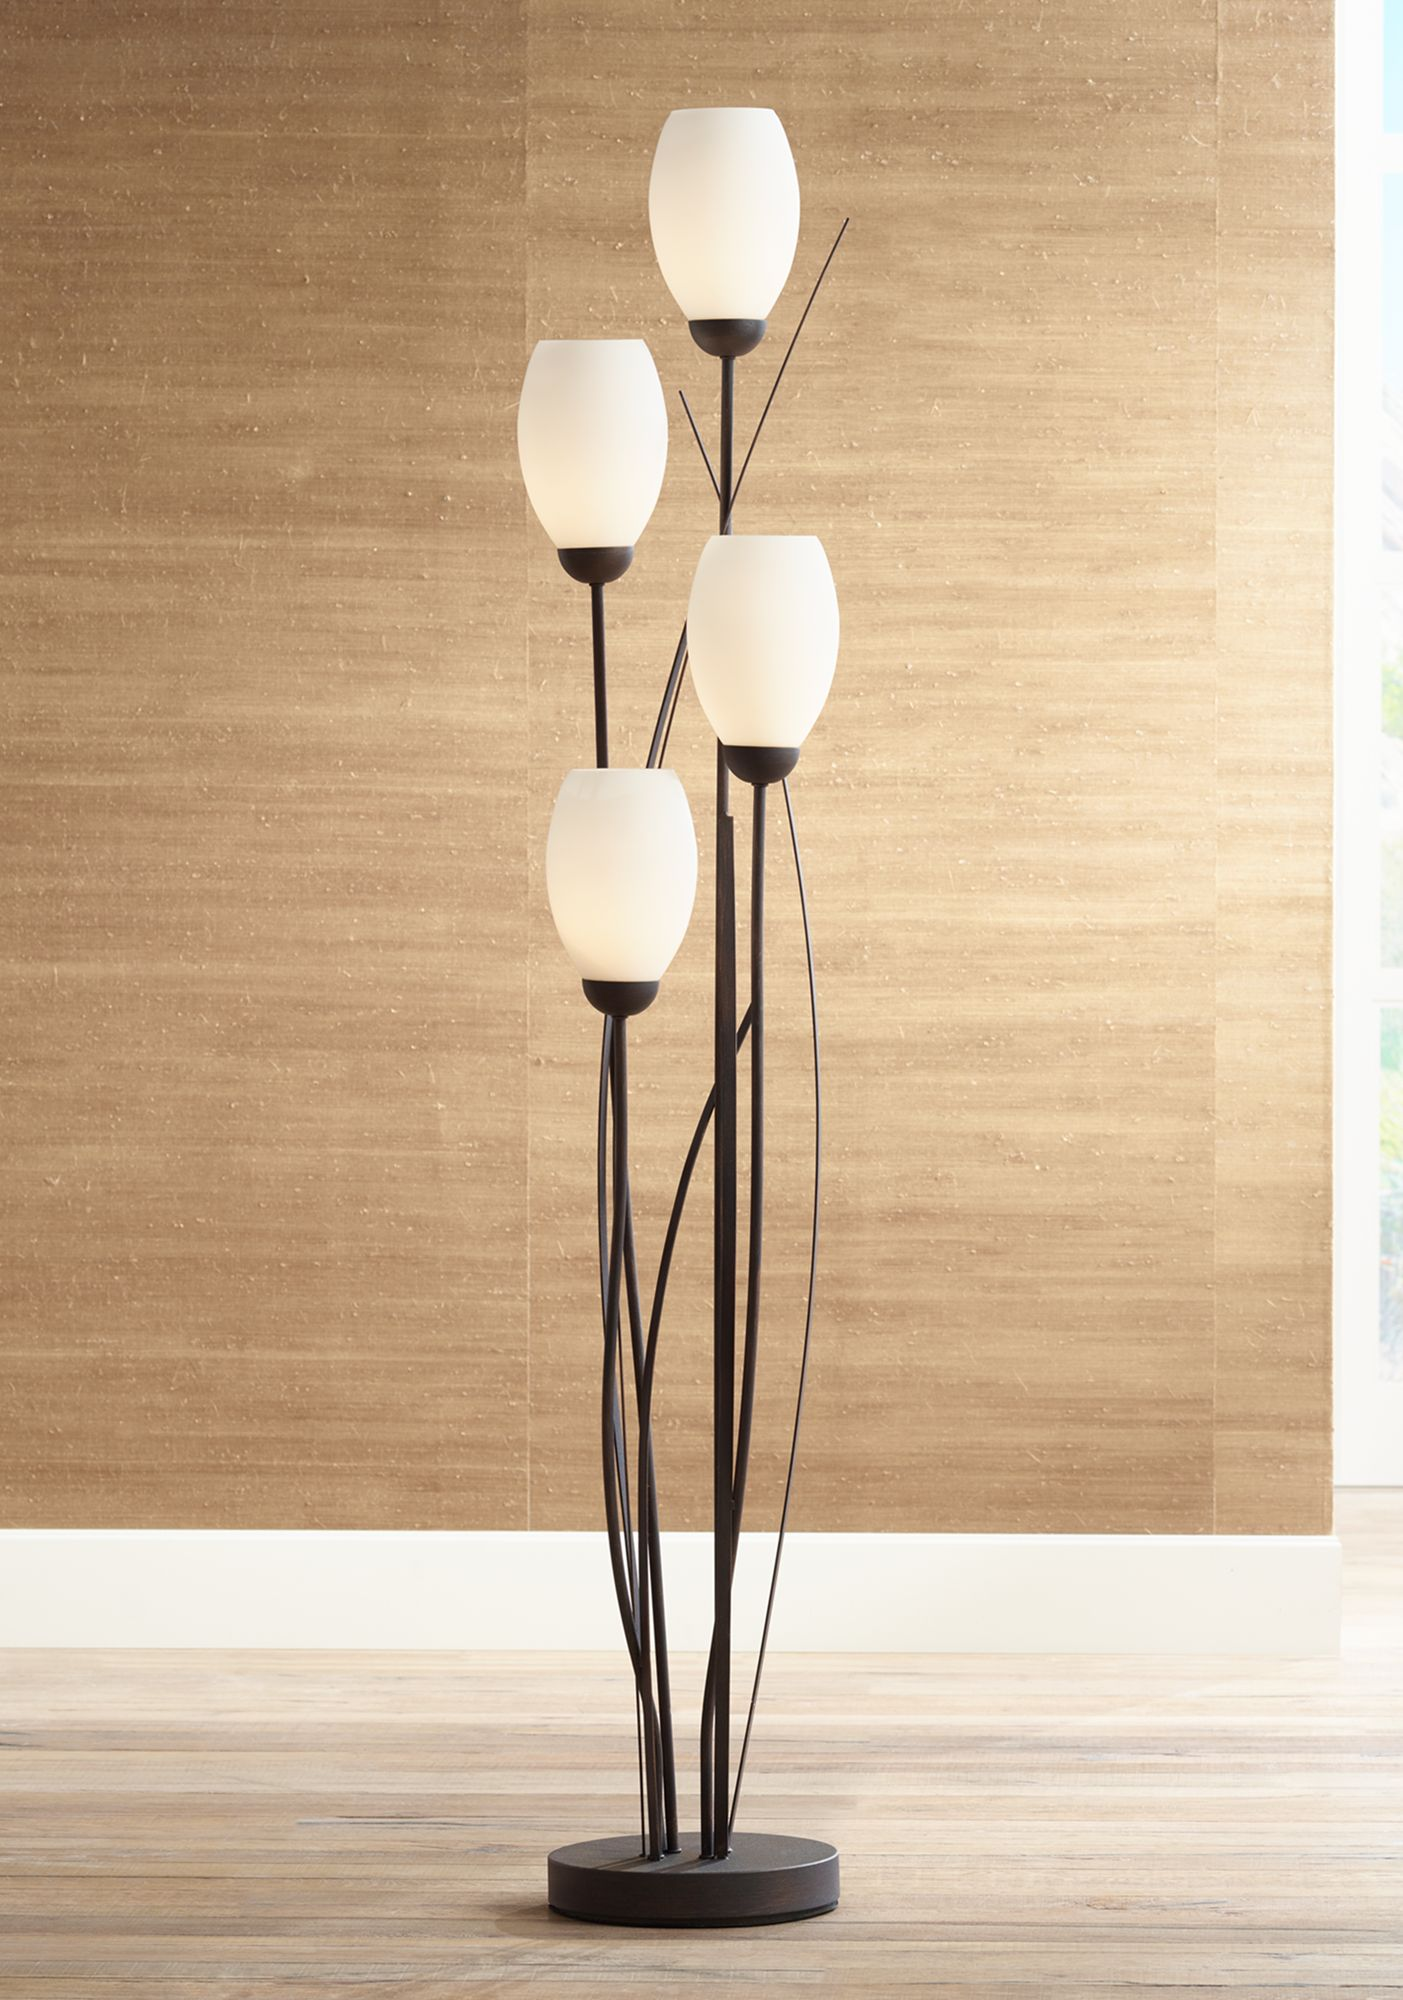 73 In. And Up - Extra Tall, Floor Lamps | Lamps Plus